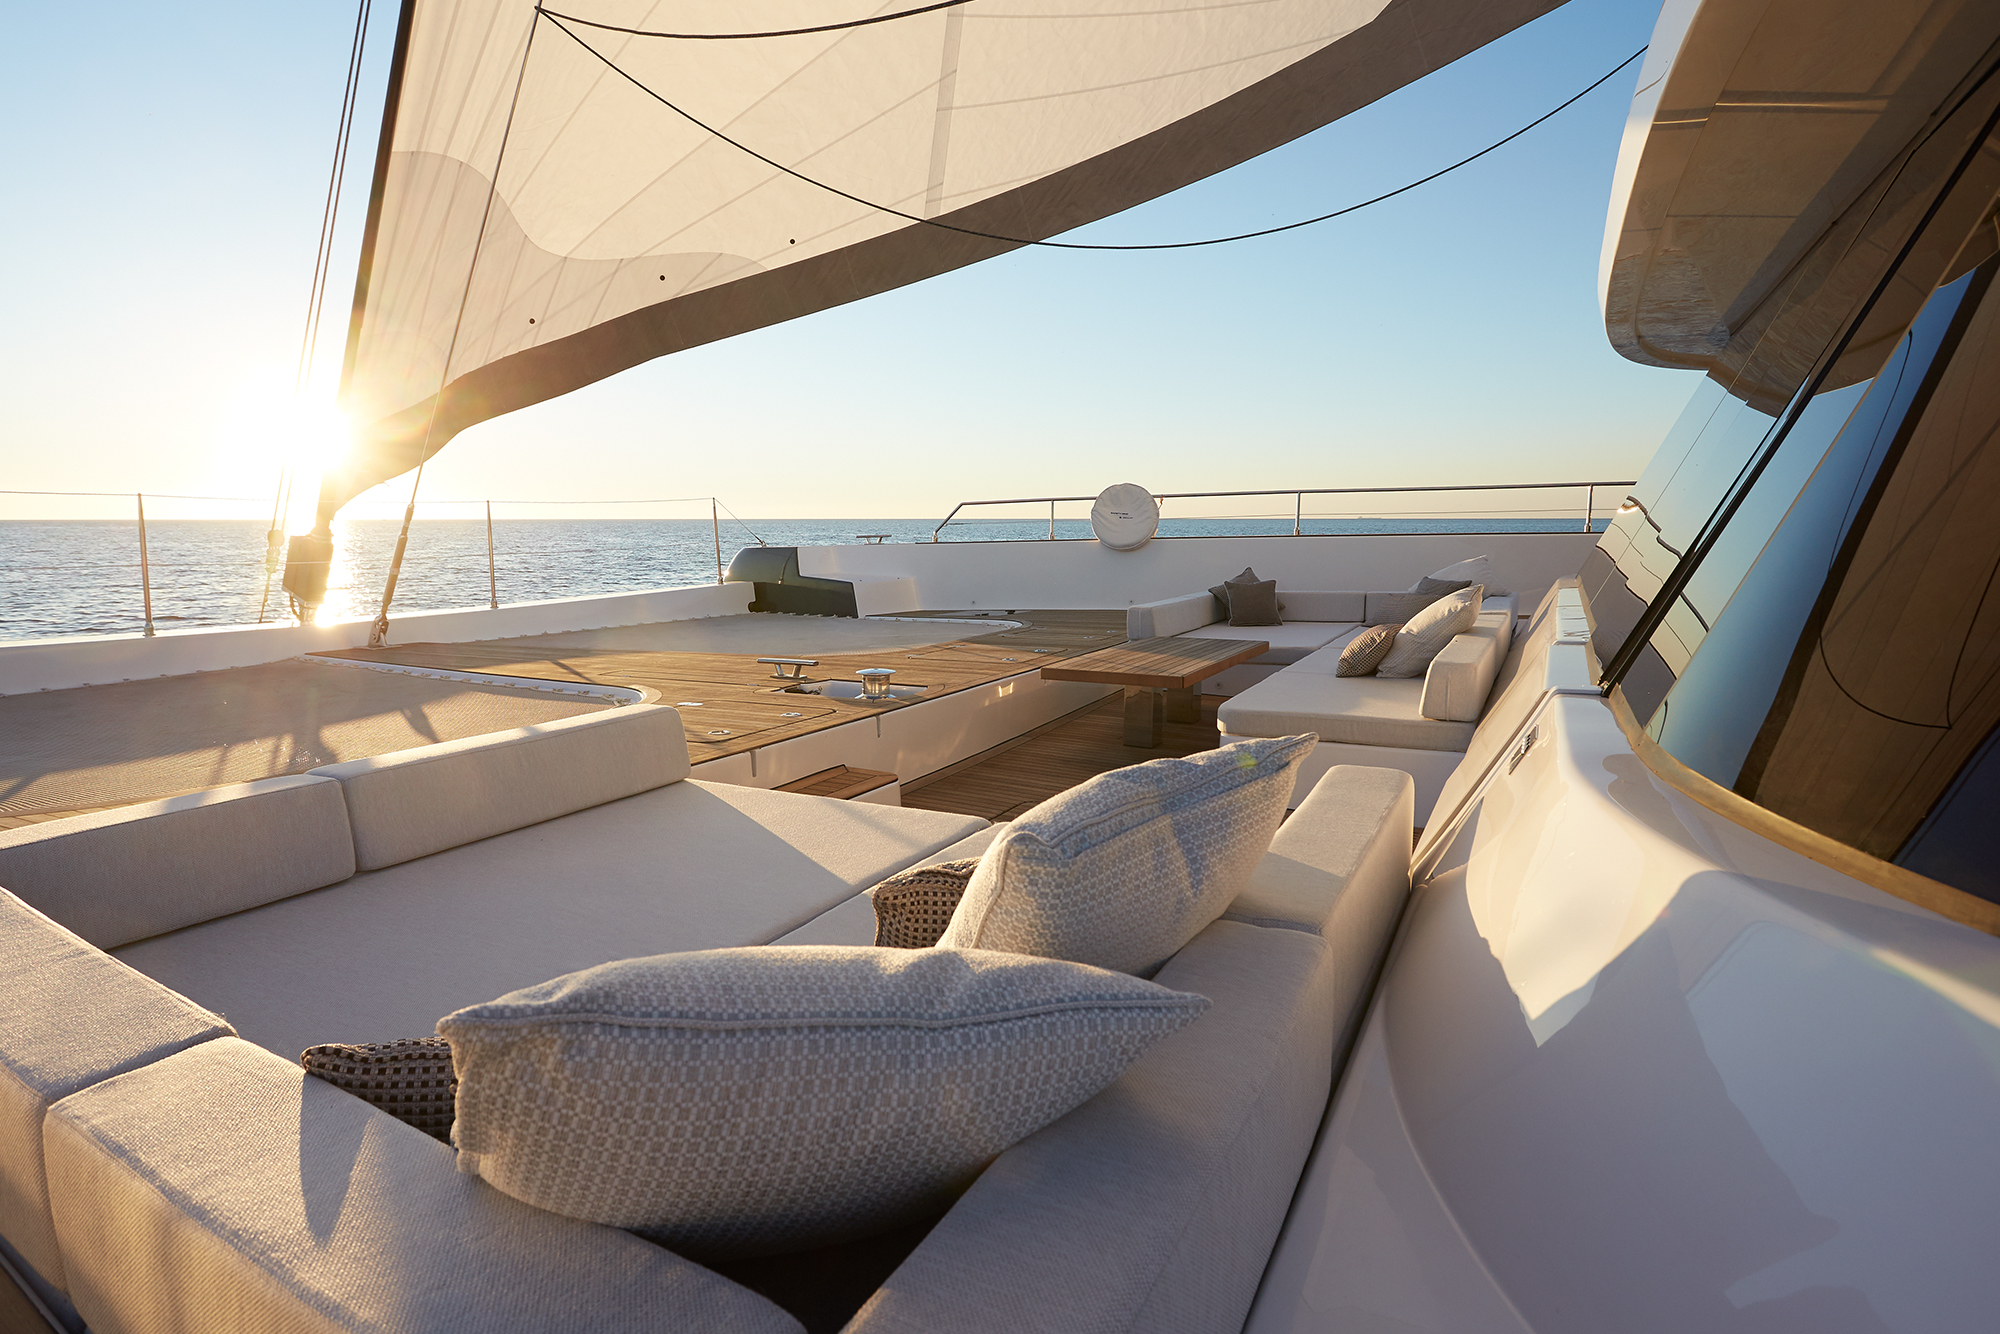 Lounging space on the bow terrace with two beige sofas on both sides on the electric sailing catamaran Sunreef 80 Eco.